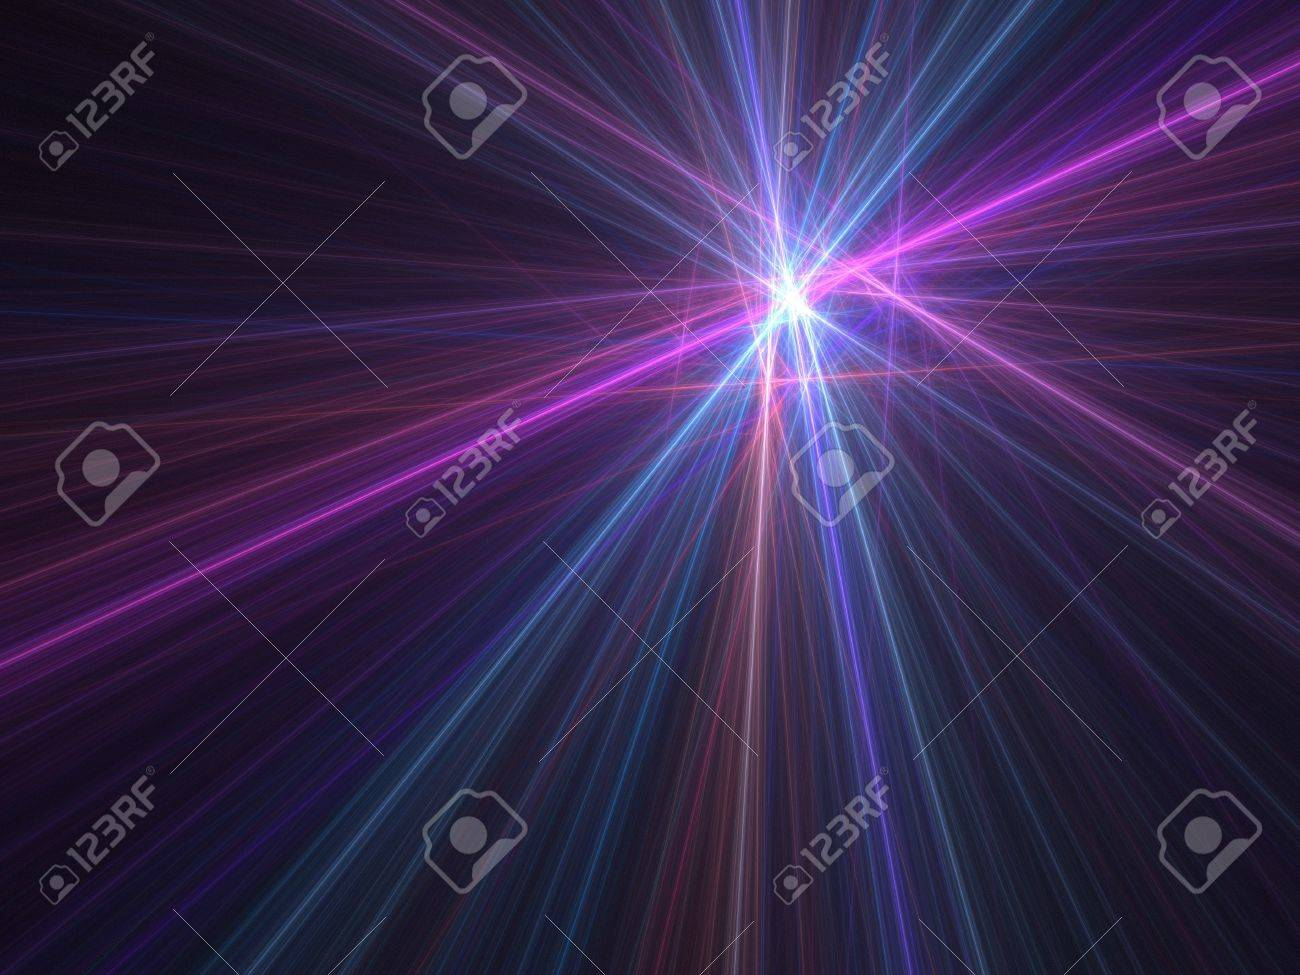 Graphics texture. Computer rendered background. 3D fractal. Night city street - speed motion blur abstract. Stock Photo - 8080263